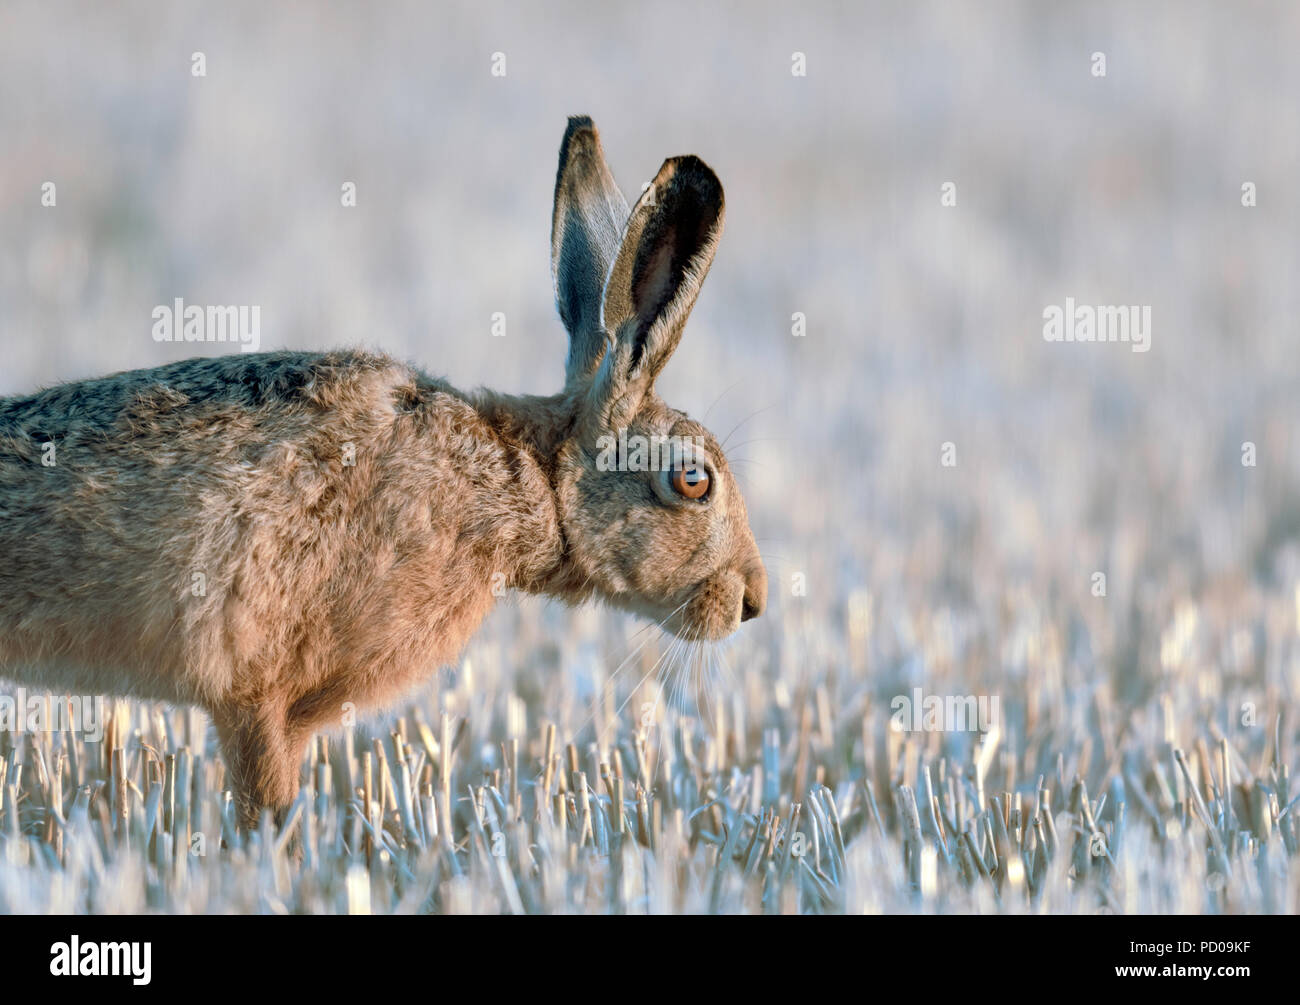 A brown Hare gets up from the stubble field and stretches before moving off. - Stock Image